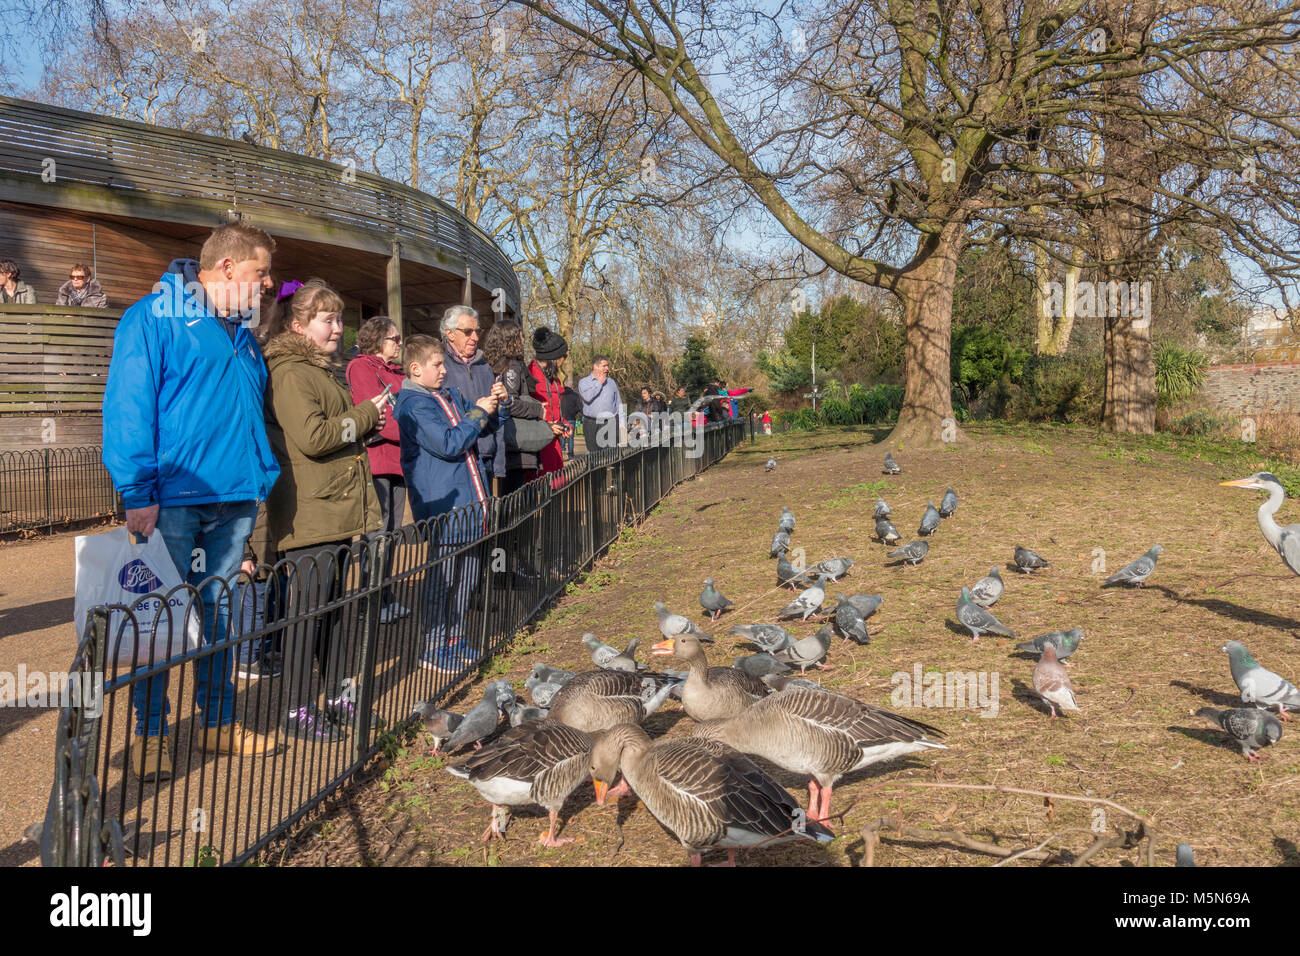 Group of visitors to St James's Park, standing by a fence watching the resident pigeons, geese and heron expecting - Stock Image